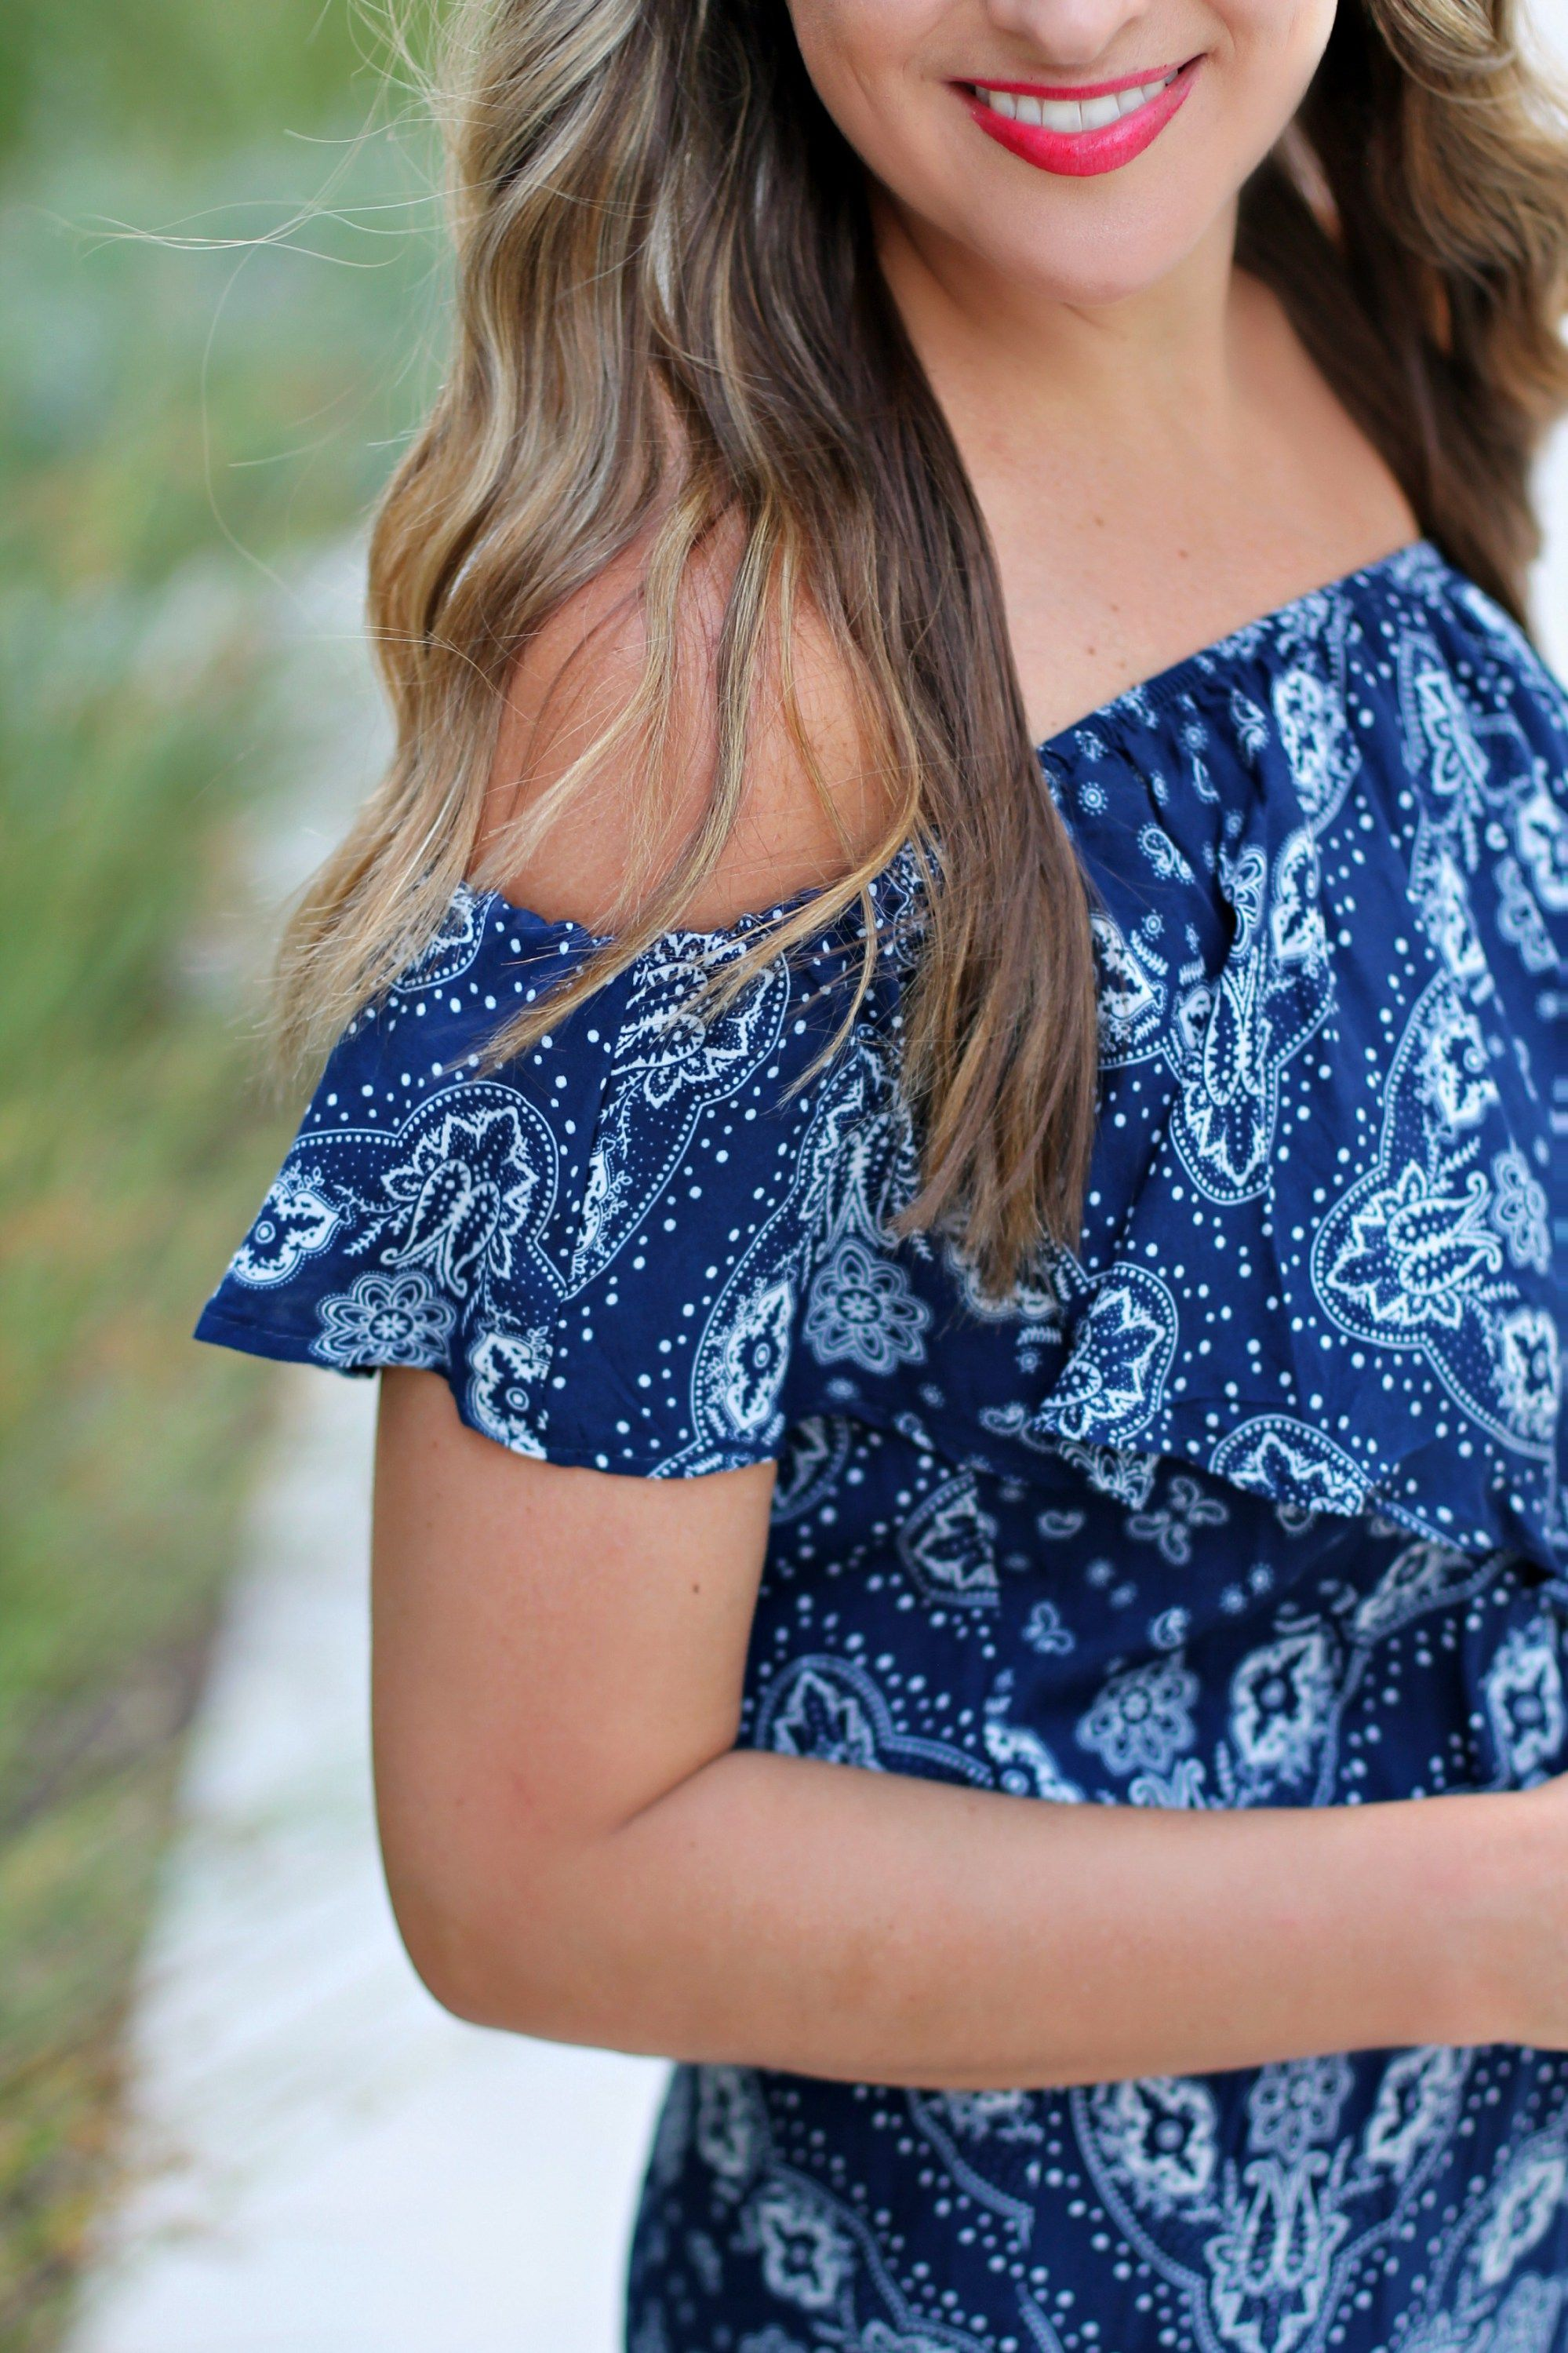 Navy Printed Pom Pom Romper  #LexWhatWear - #styleblogger #fashionblog #blog #style #outfit #fashion #ootd #nashvillestyle #wearing #lookbook #outfitideas #styleinspo